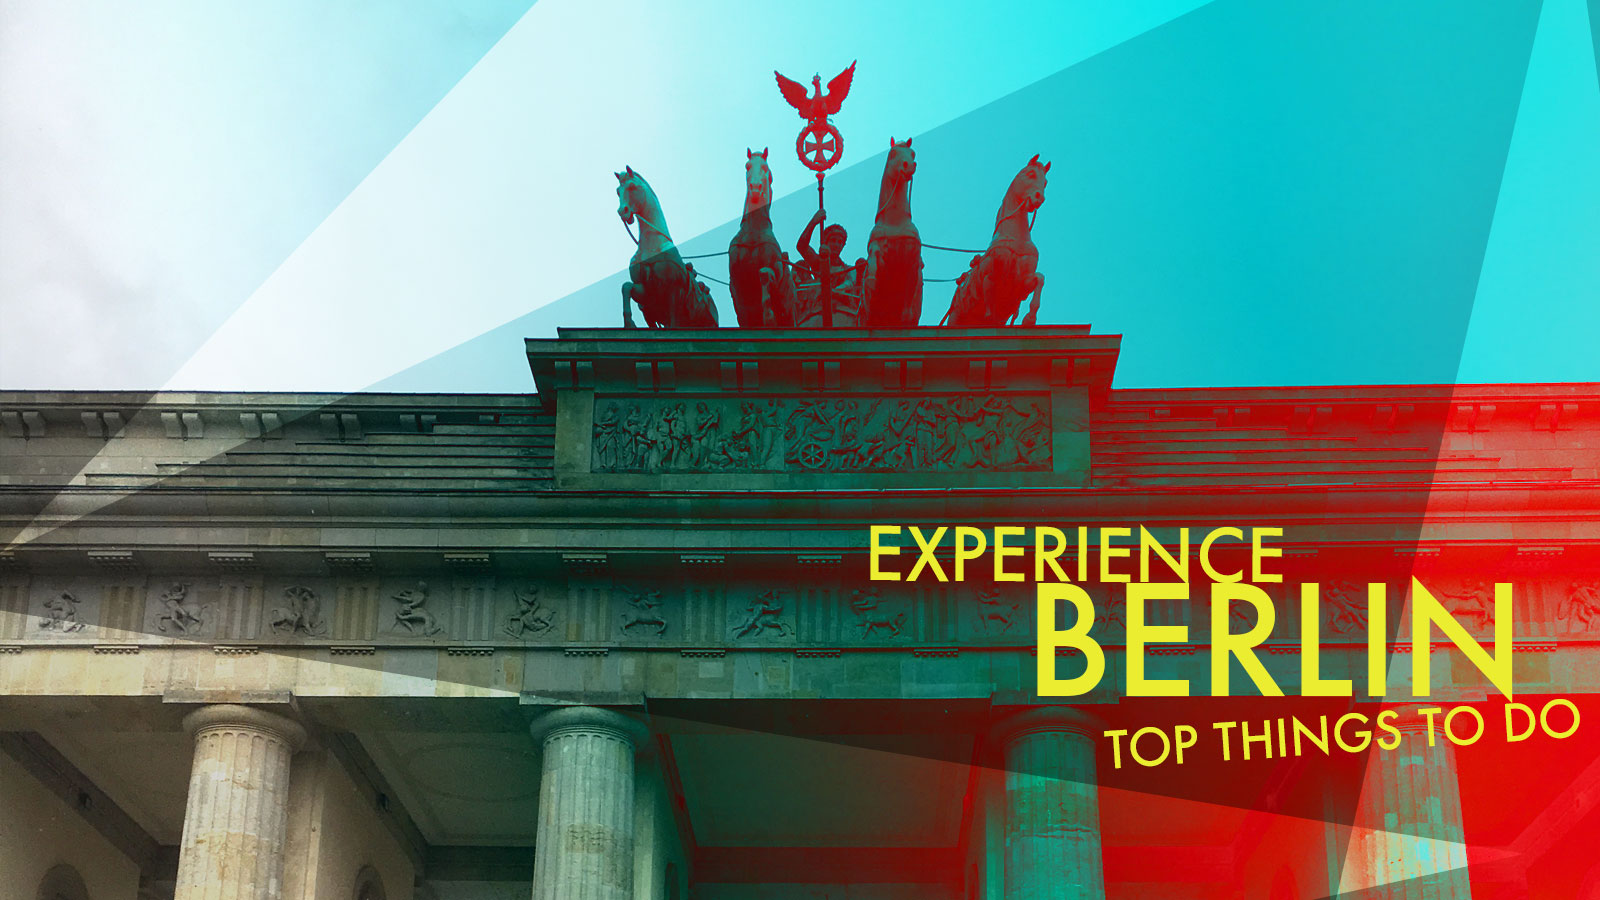 Experience Berlin with top things to do and see